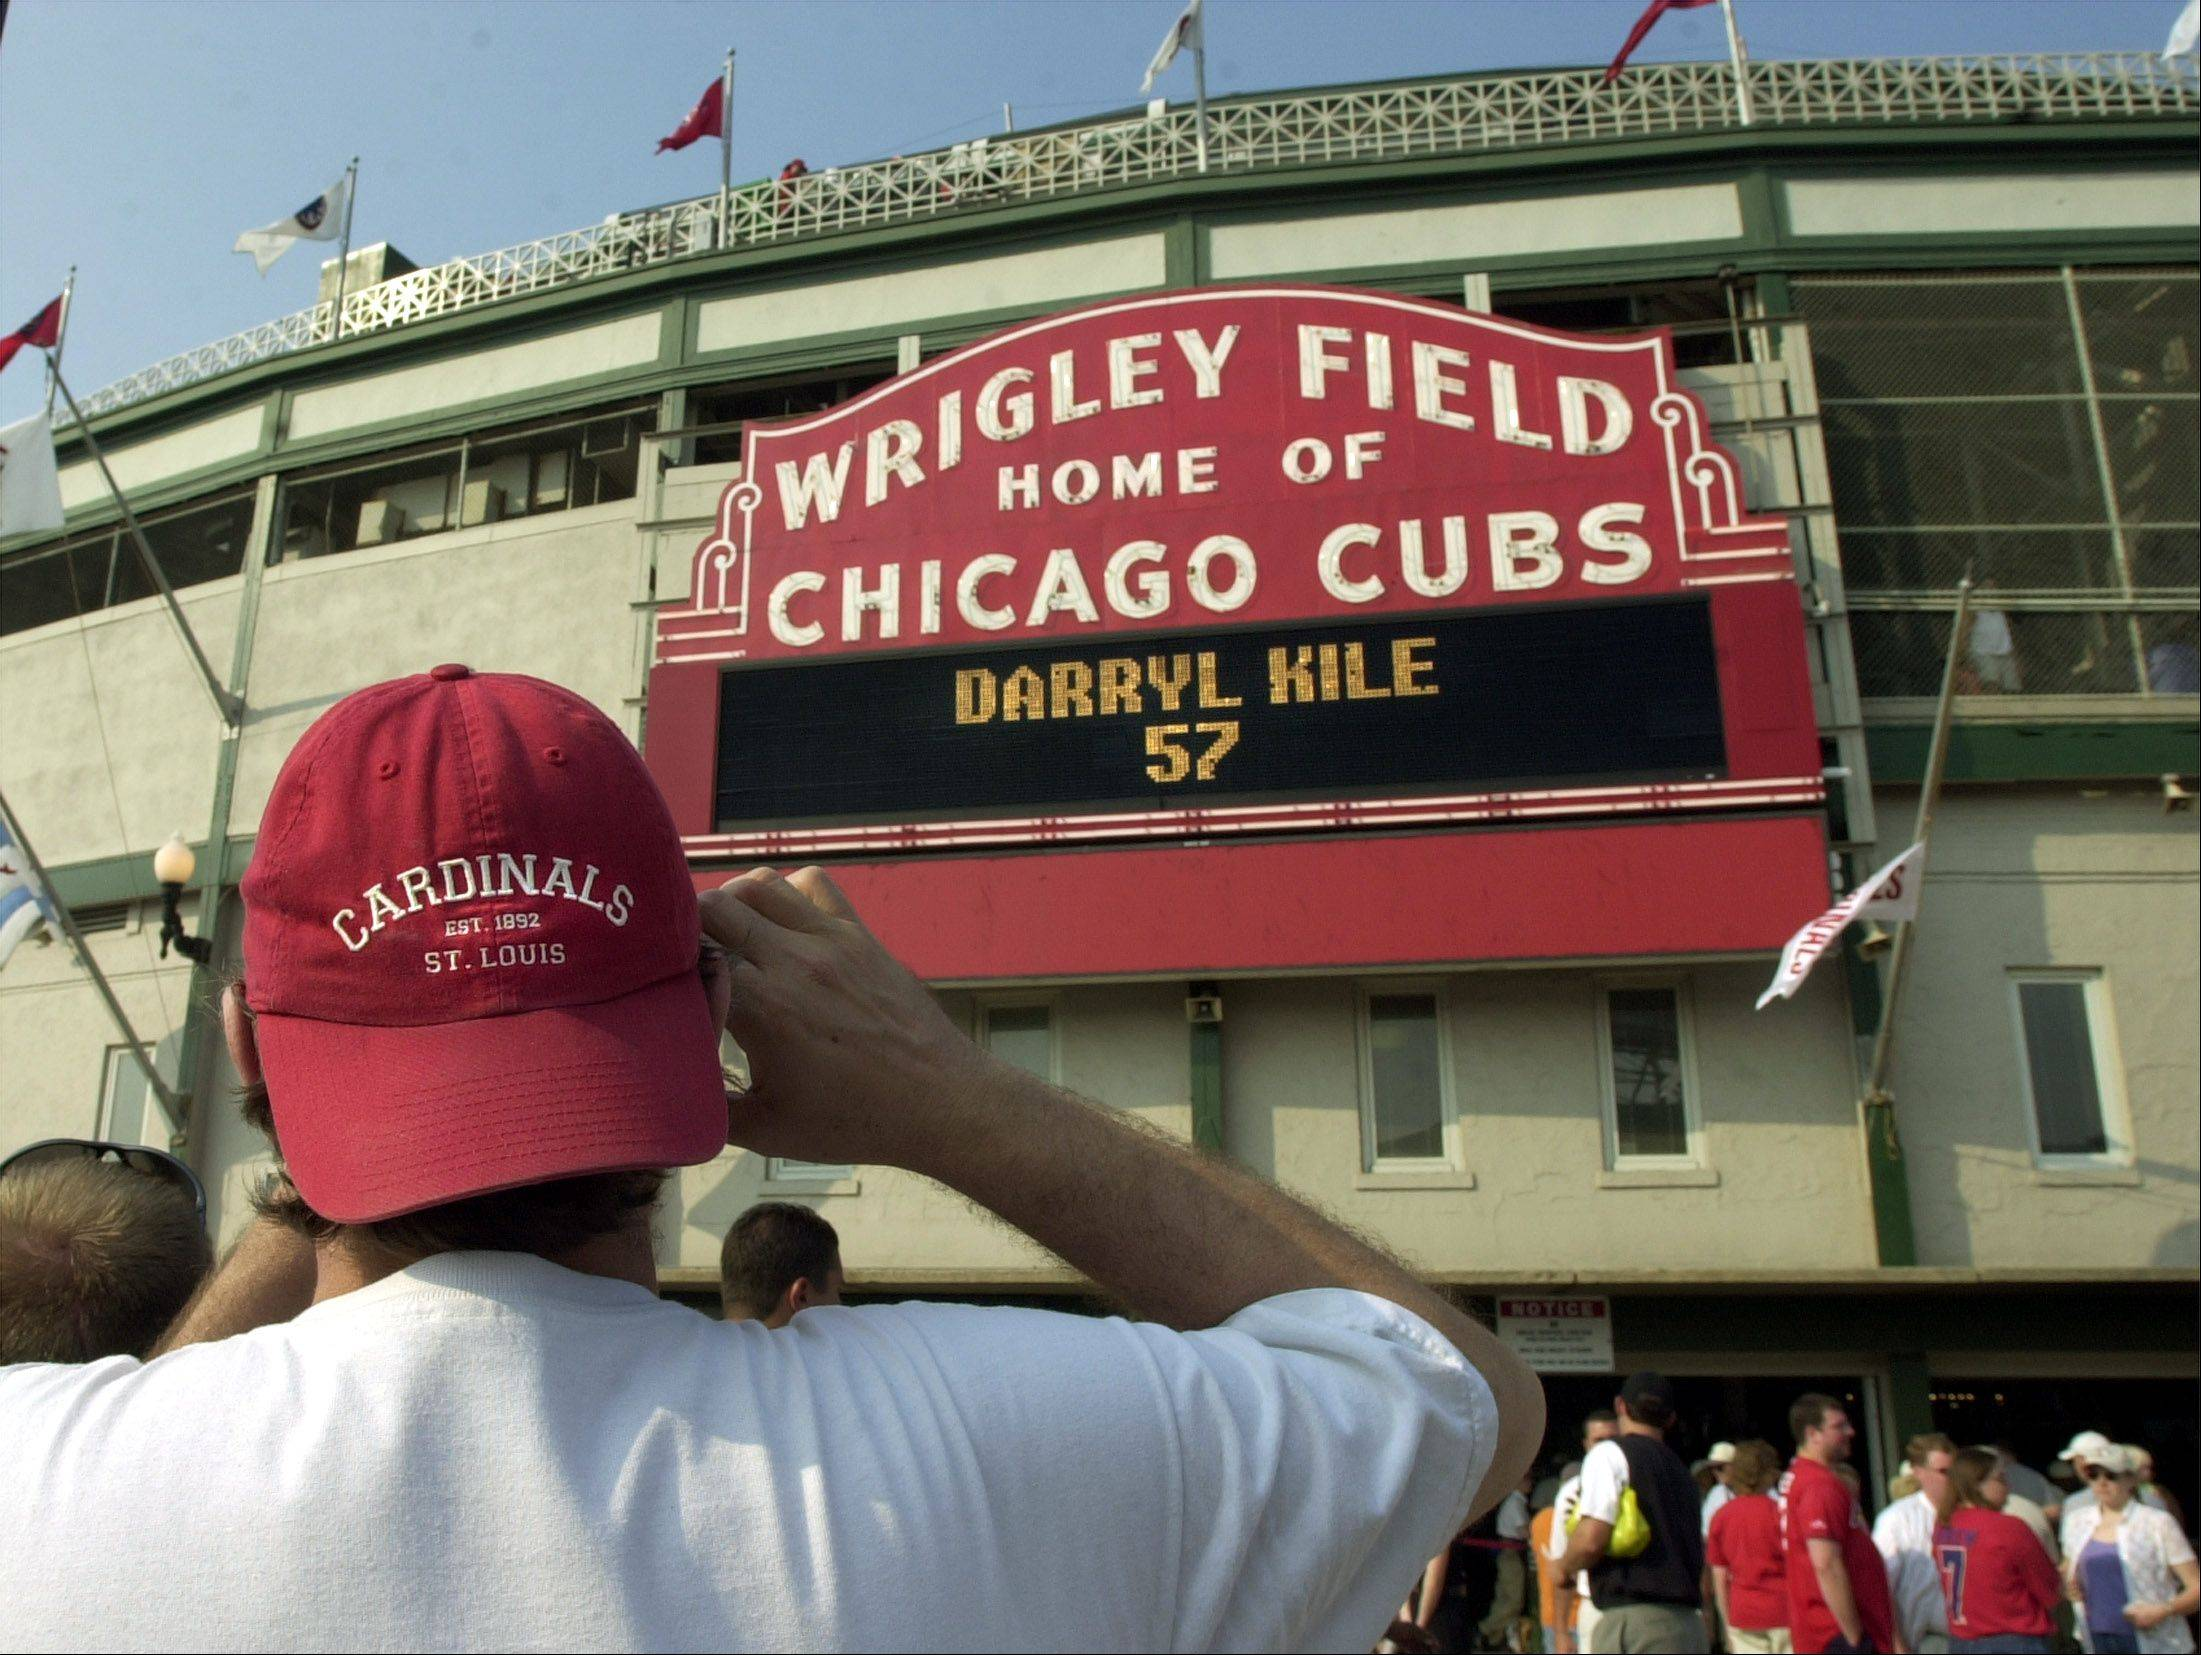 Chicago's Landmarks Commission is set to consider the most hotly-debated part of the Cubs' $500 million plan to renovate Wrigley Field. That is the proposal to build a massive video scoreboard in left field.